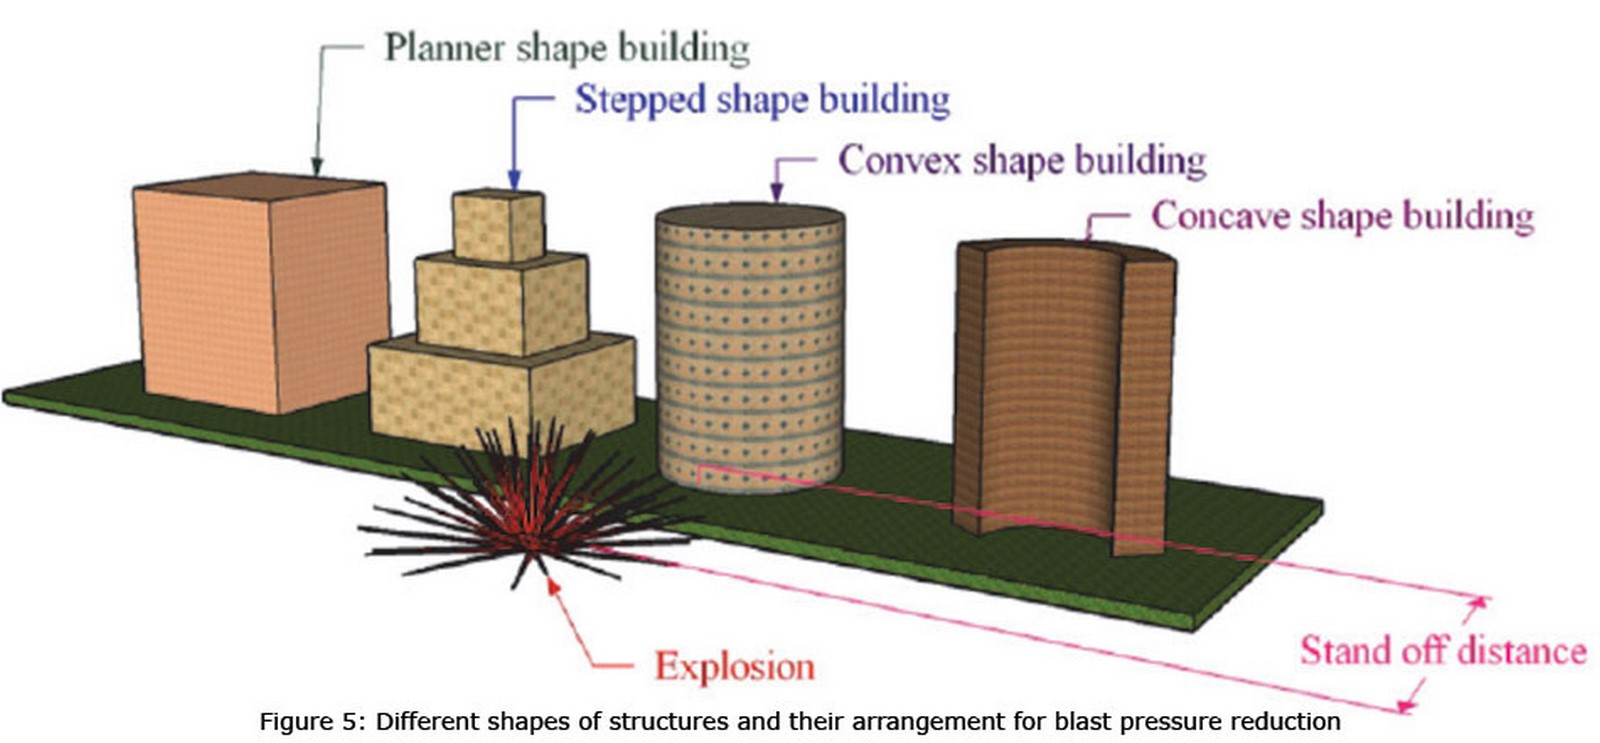 Role of Architects while designing blast-resistant buildings Sheet2